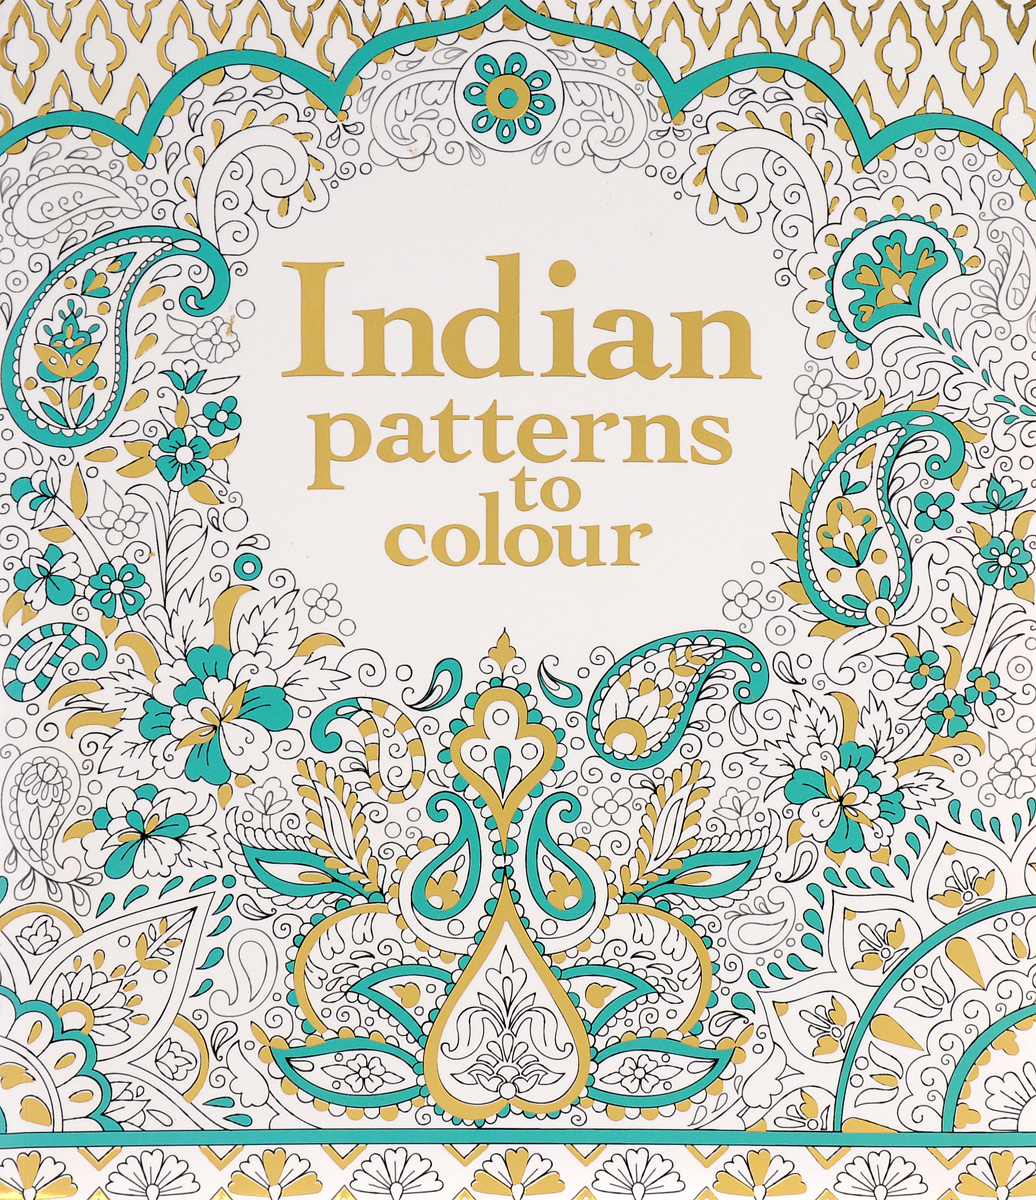 INDIAN PATTERNS TO COLOUR indian patterns to colour